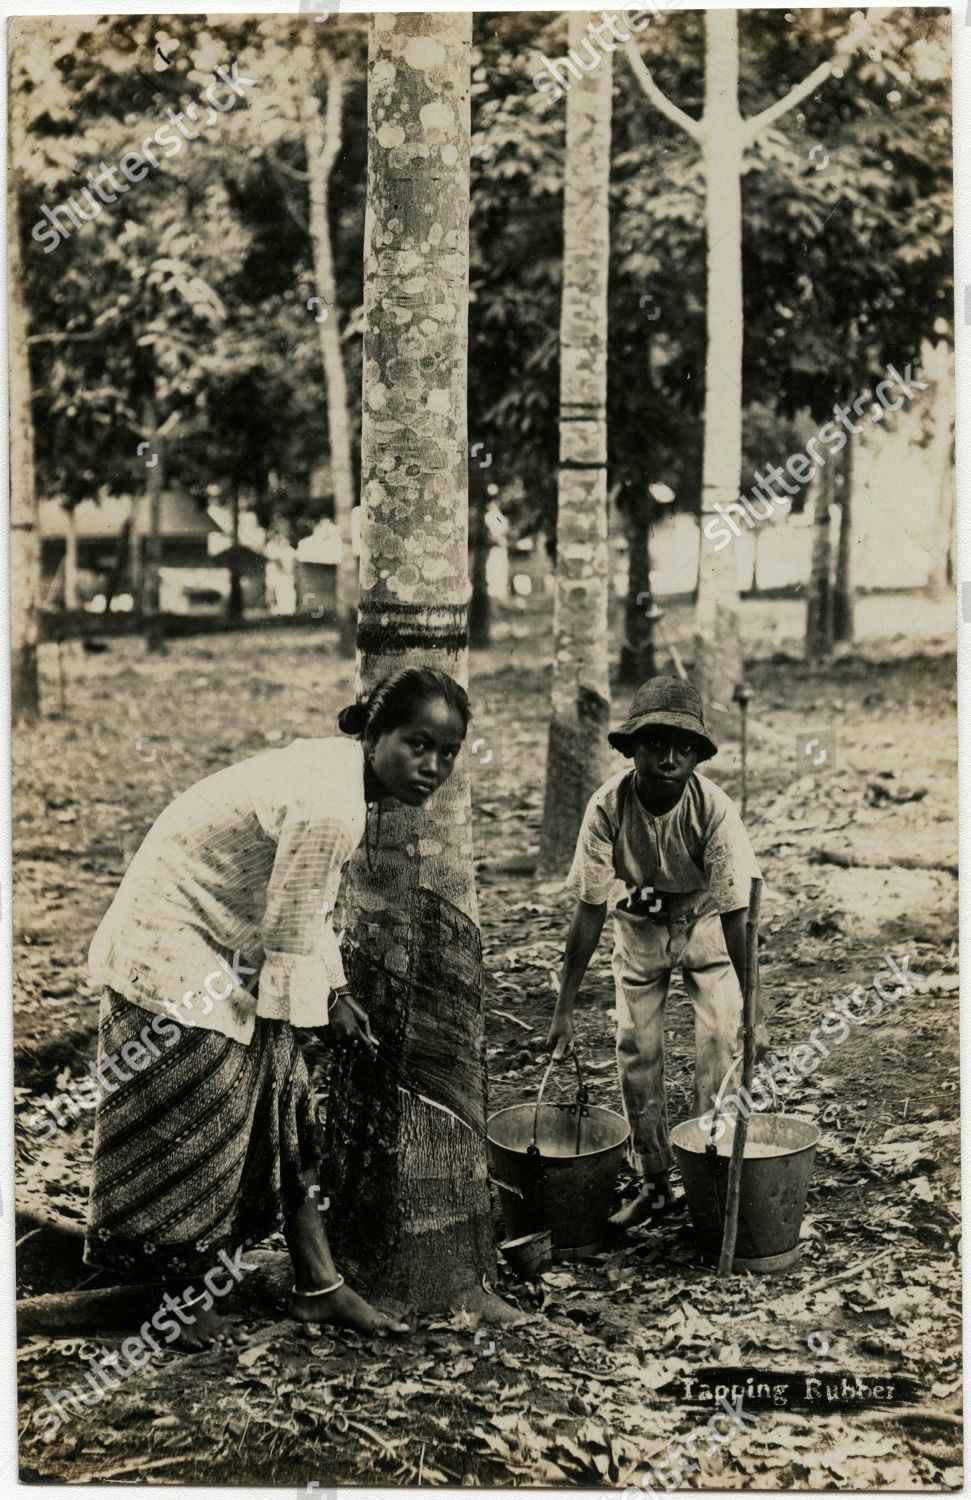 Stock photo of Malaysia - Tapping Rubber Trees